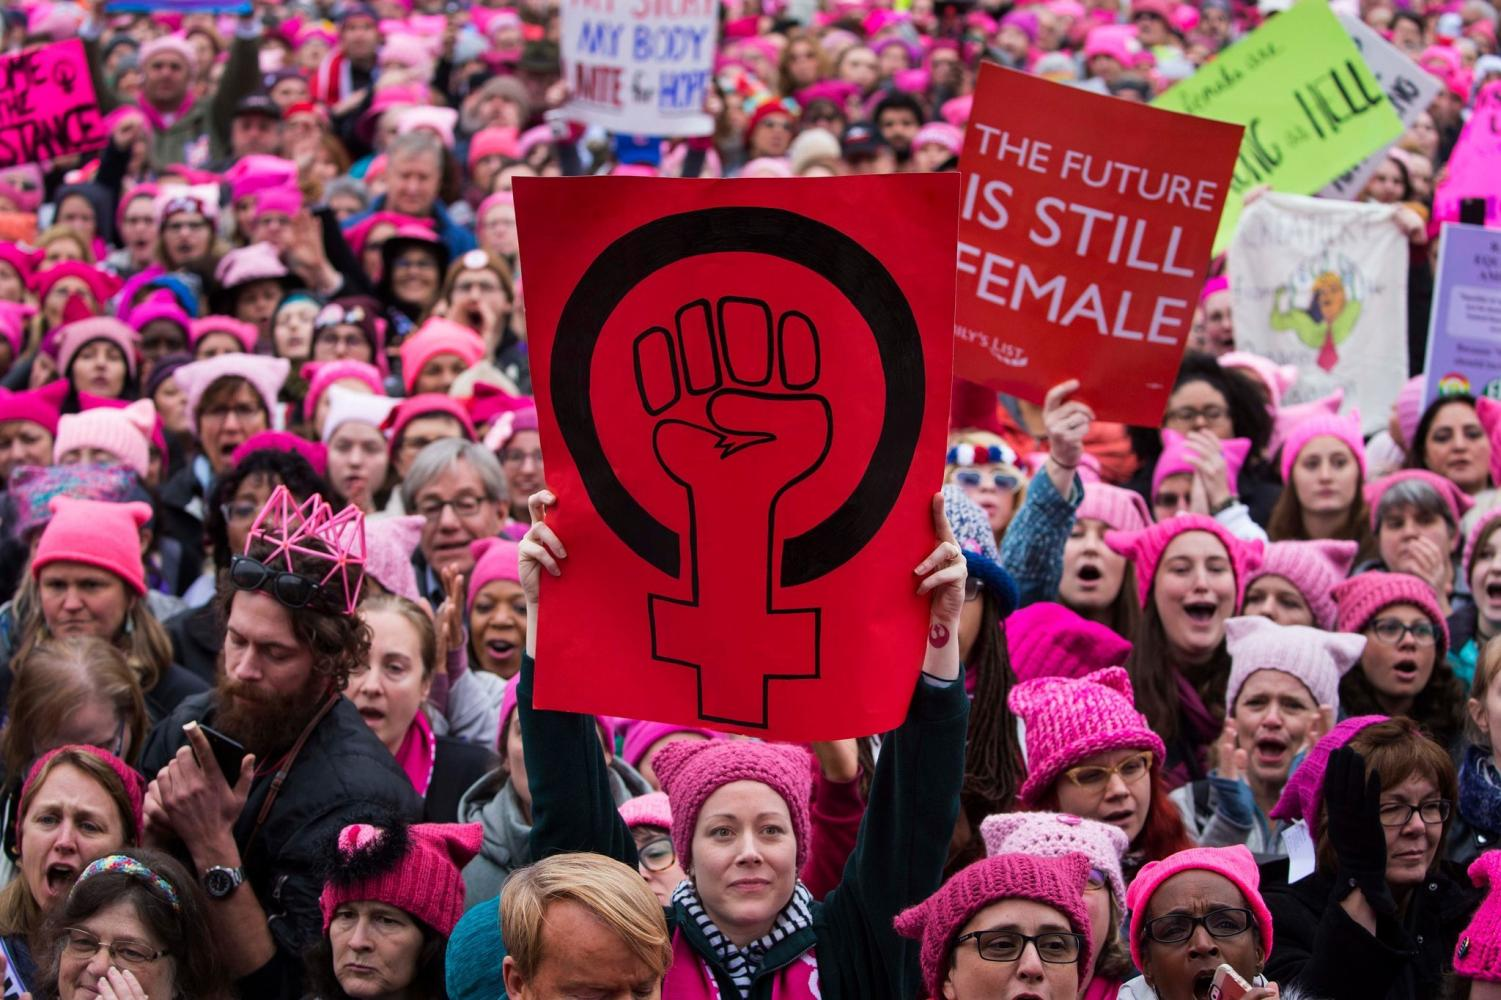 At the Washington, D.C. Women's March on Jan. 21, 2017, thousands of feminists walked in solidarity to show their support for women's rights. Similar marches took place all over the country on this day, many in protest of President Donald Trump's presidency.